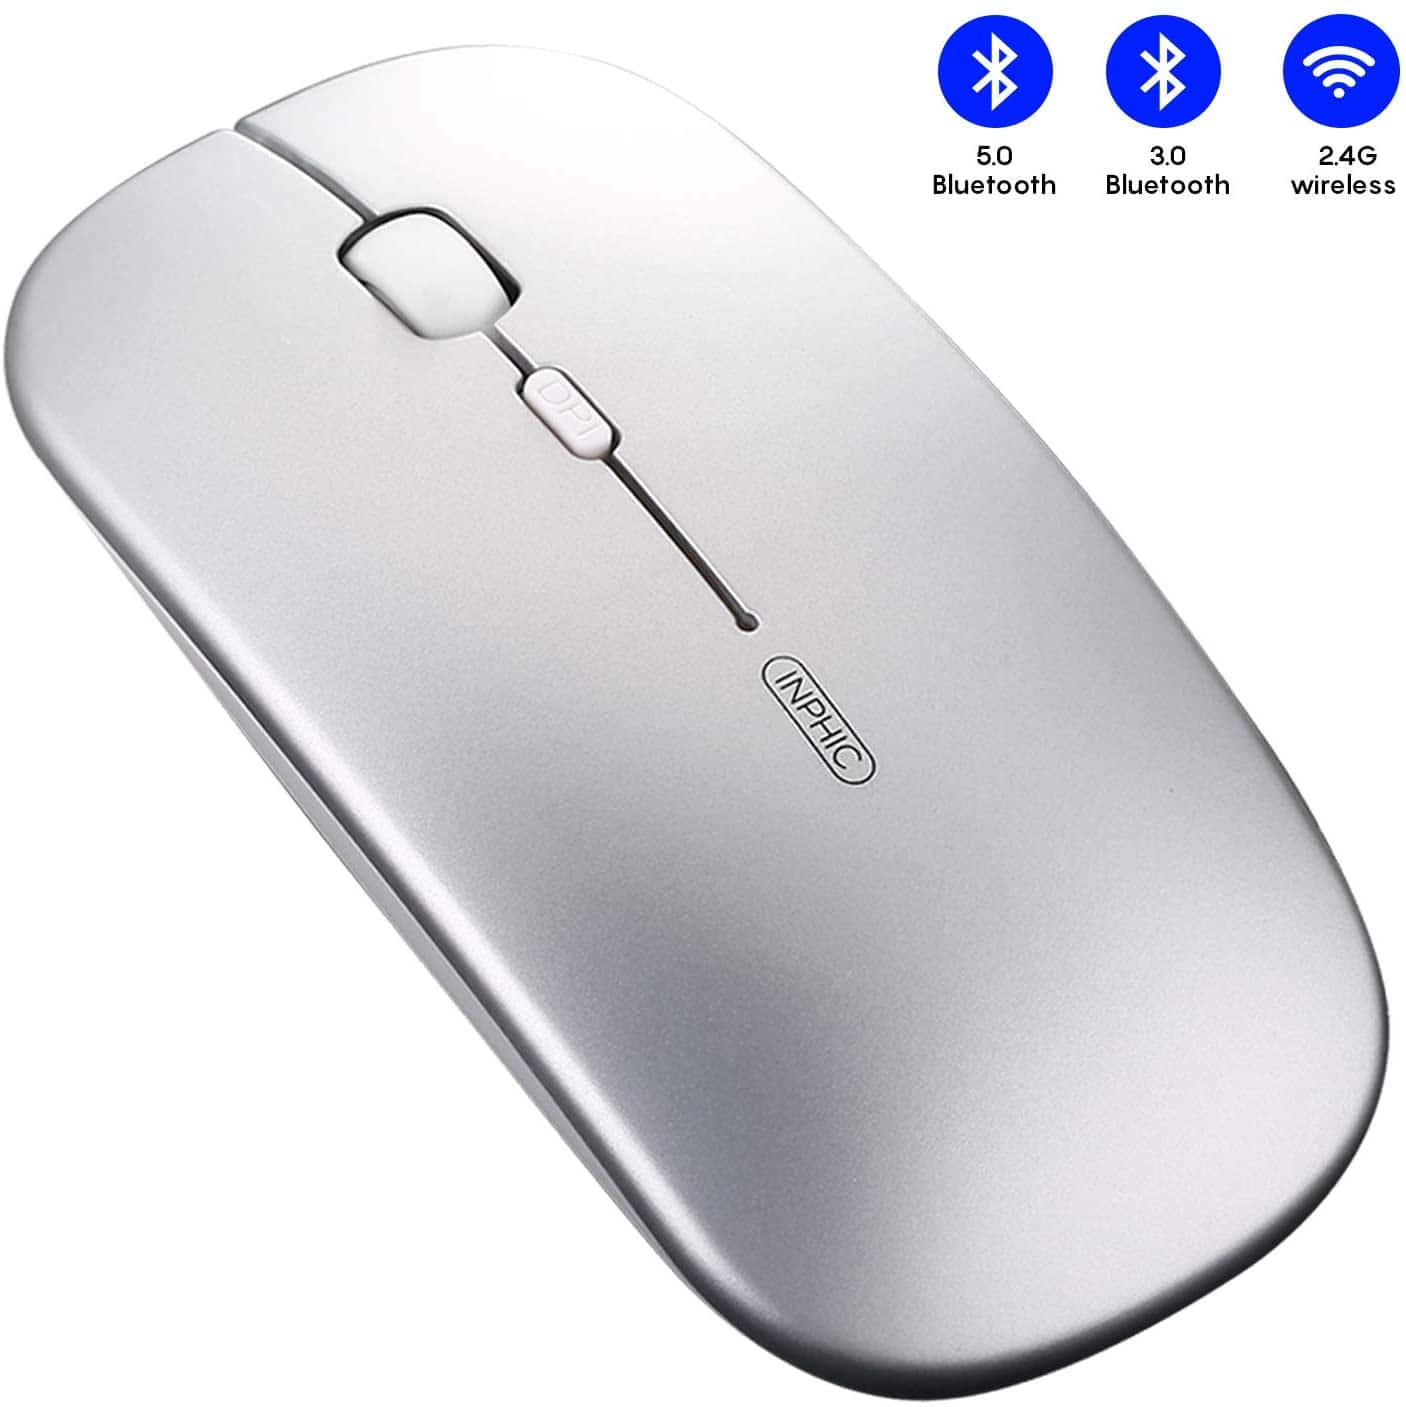 Tri-Mode Slim Silent Rechargeable Bluetooth Wireless Mouse (Bluetooth 5.0/3.0+ 2.4G Receiver) $8.63